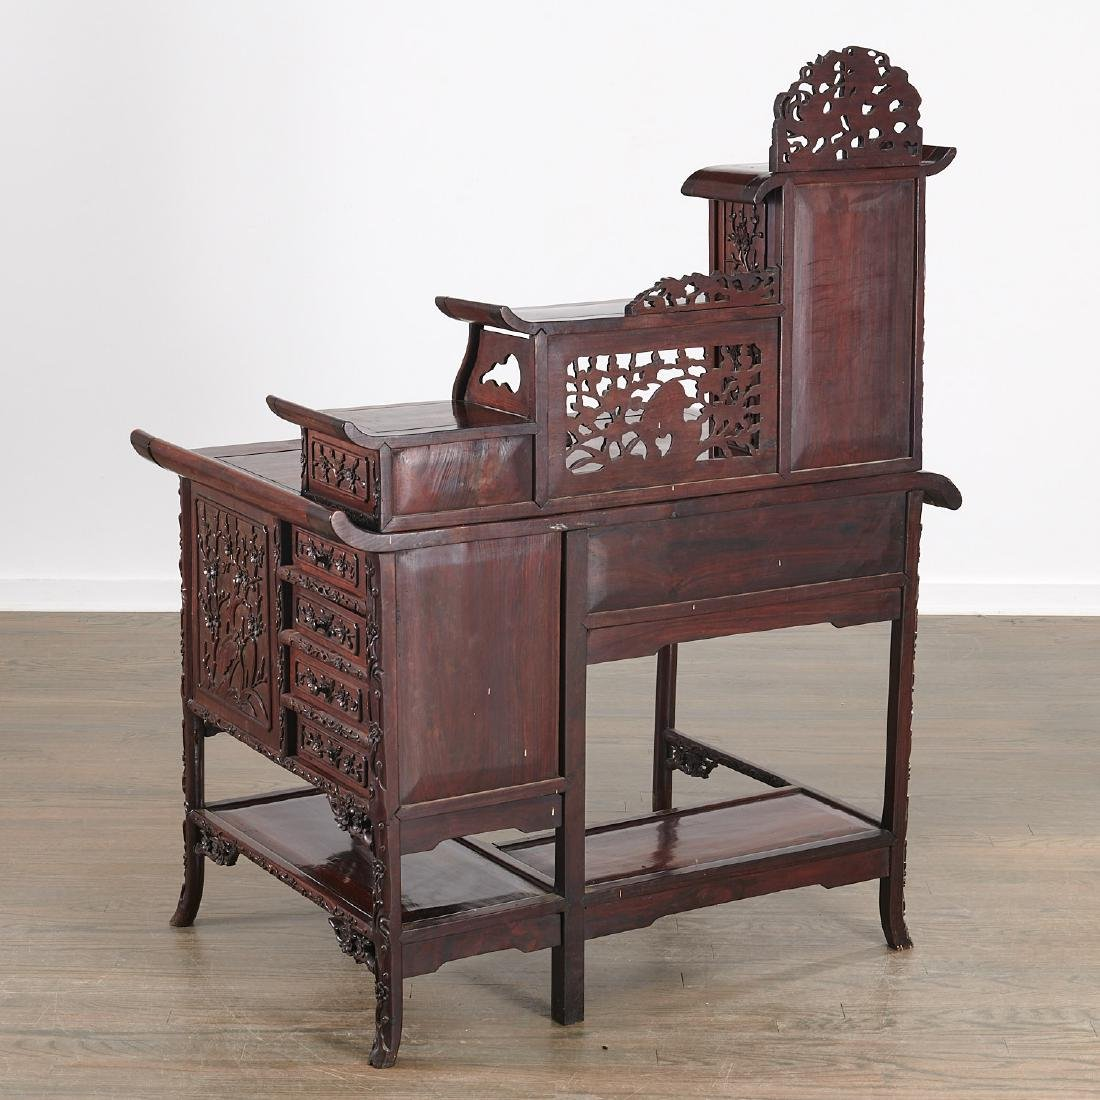 Fine Chinese Export carved hardwood two-part desk - 6